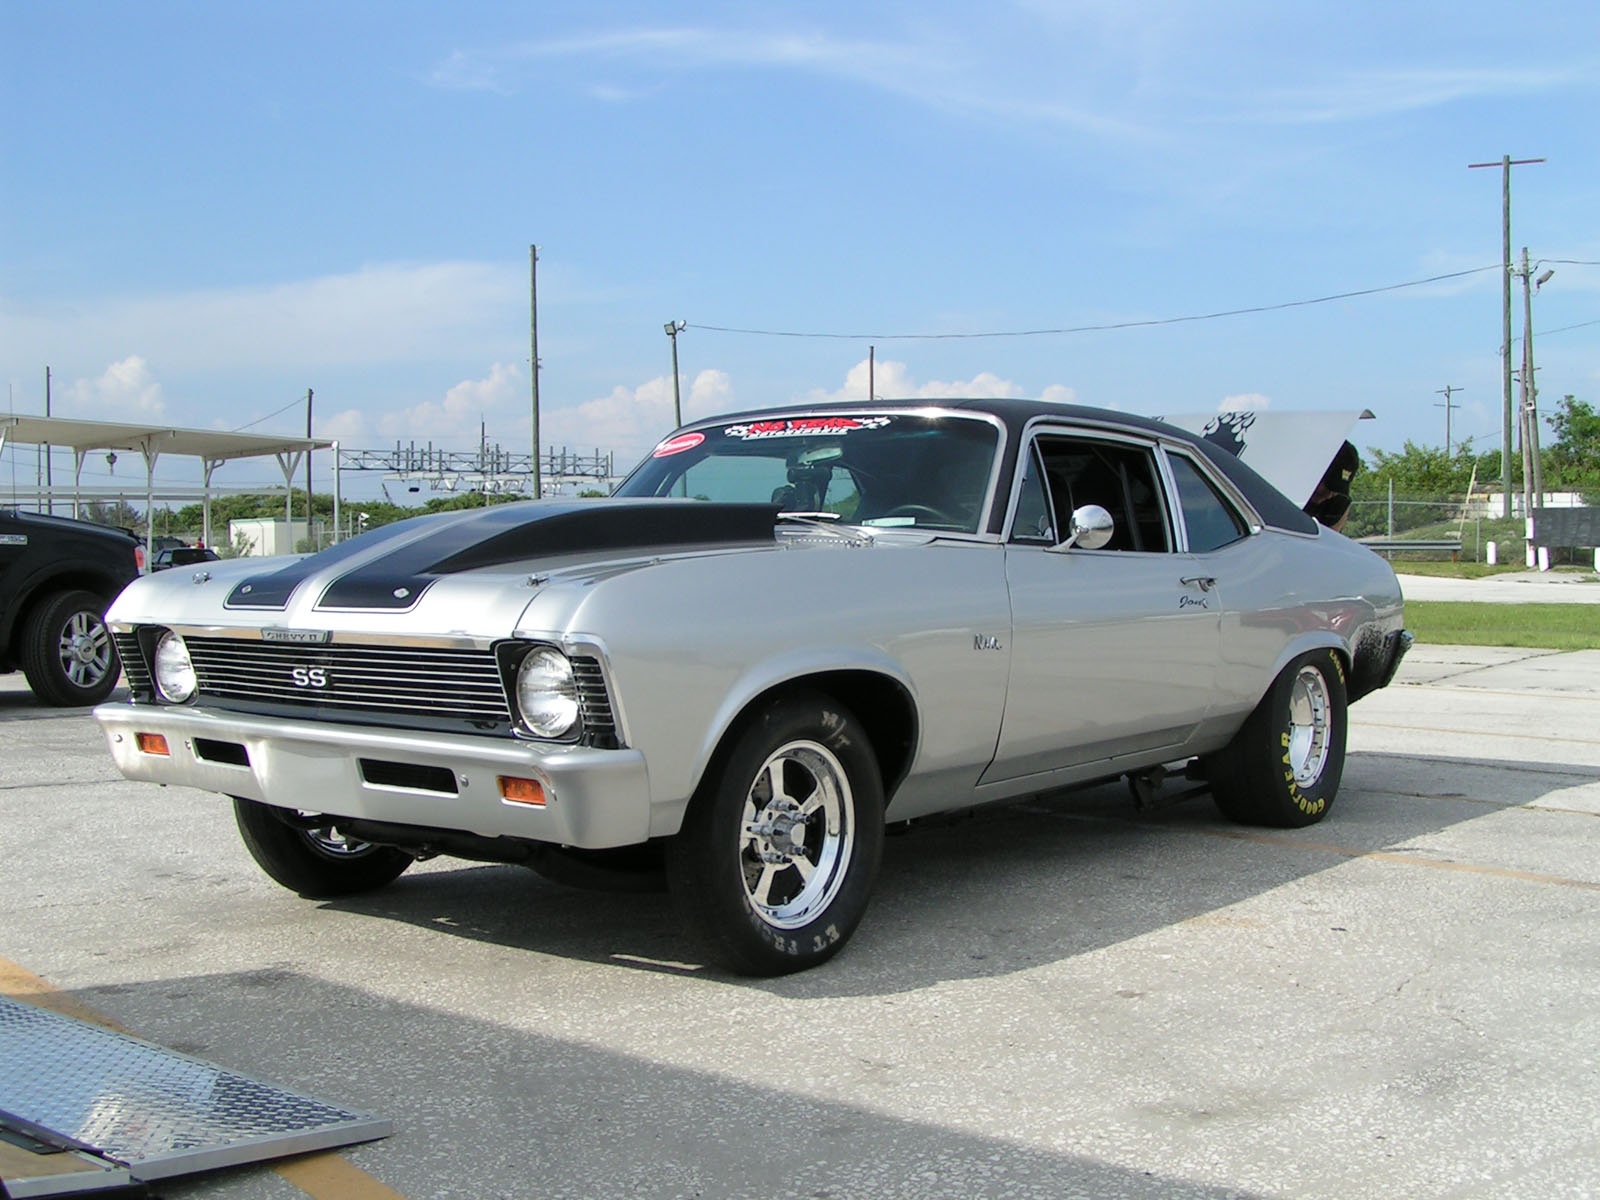 1969  Chevrolet Nova coupe picture, mods, upgrades